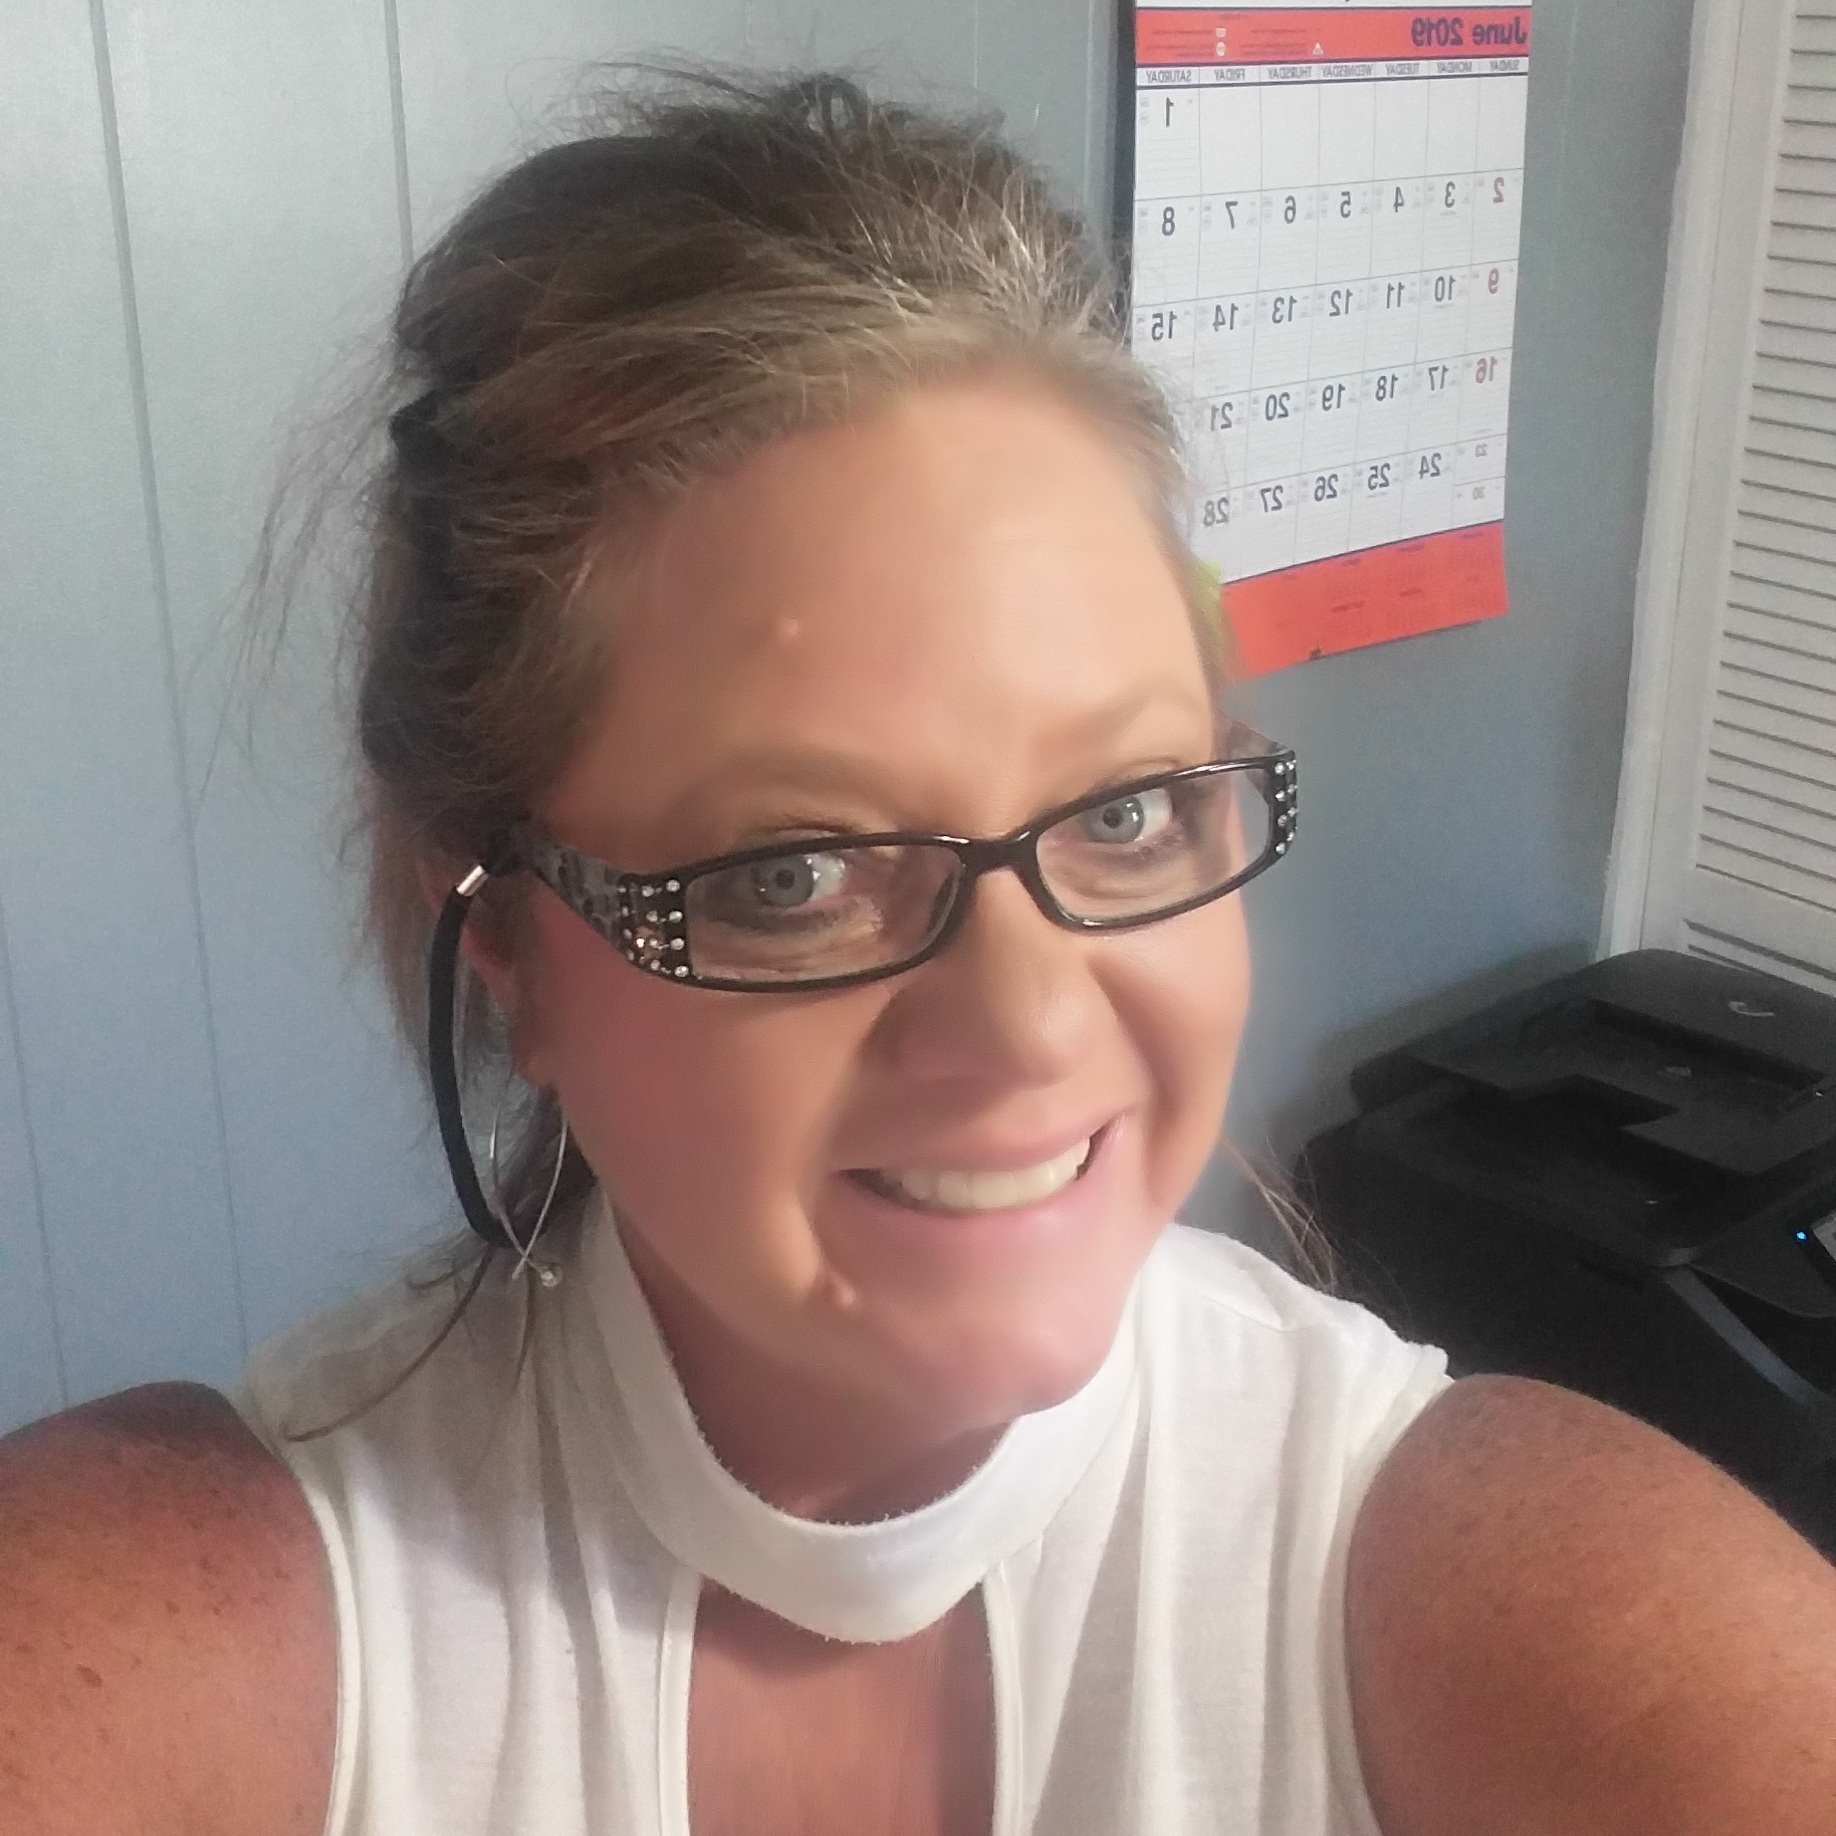 Debbie Jacobs - ADMINISTRATIVE ASSISTANT / DISPATCHERDebbie has been with Chilly Pepper since June 2018 and has over 20 years experience in Office Managing, Bookkeeping, & Scheduling. She brings with her; knowledge of HVAC equipment, knowing the area for scheduling and making sure there is always a satisfied customer. With a positive and professional attitude, she always puts the customer first, making sure they get the upmost professional customer and technical service. Debbie loves spending time on the boat with her family.